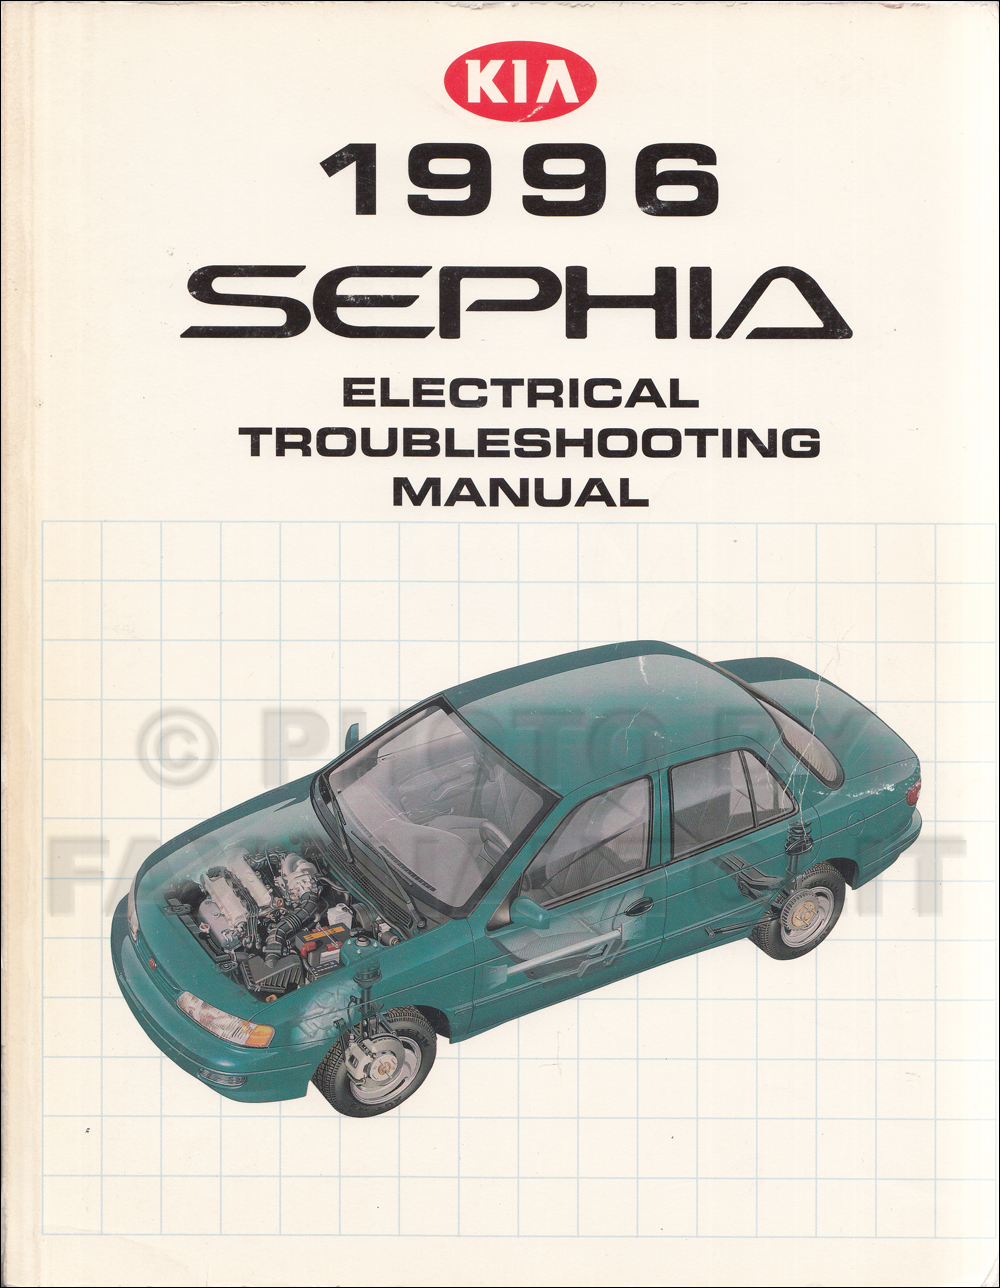 1996 Kia Sephia Engine Diagram Vacuum List Of Schematic Circuit Wiring Electrical Troubleshooting Routing Manual Rh Faxonautoliterature Com